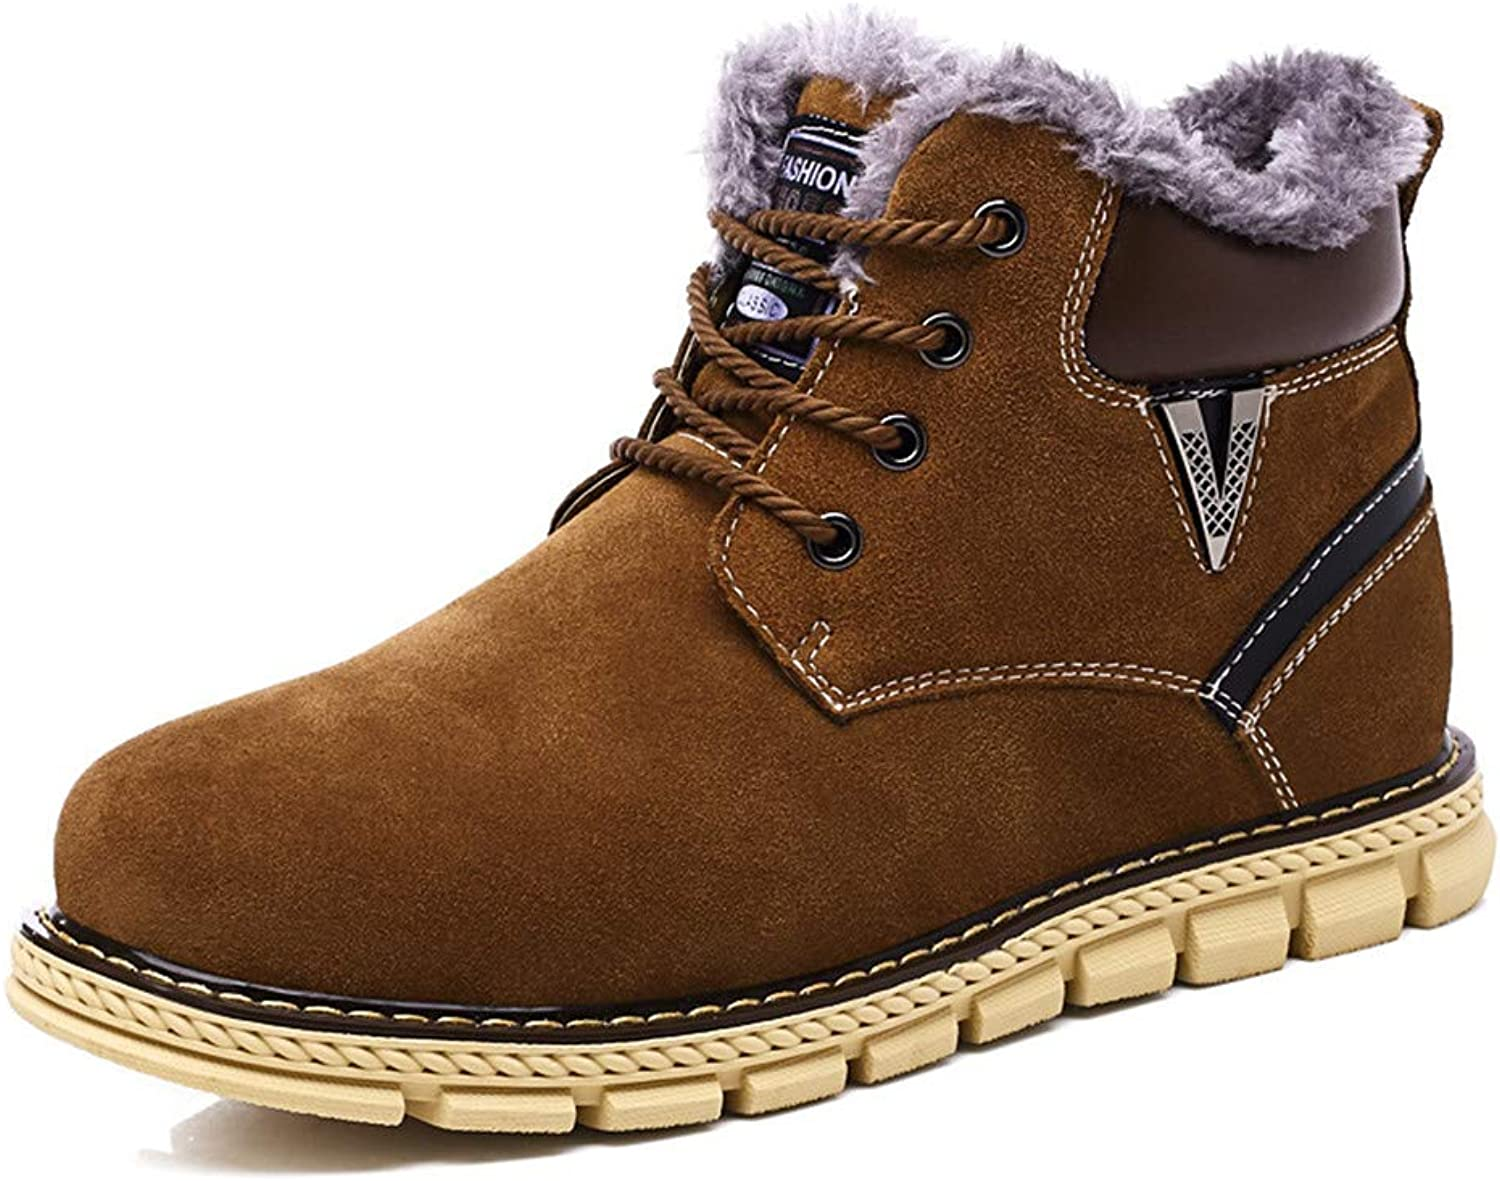 Men's shoes Men's shoes, Plus Size Men Booties Martin Snow Boots Winter Warm Plus Velvet Cotton shoes Unisex Outdoor Warm Leather Boots Men's Fashion Boots (color   A, Size   44)